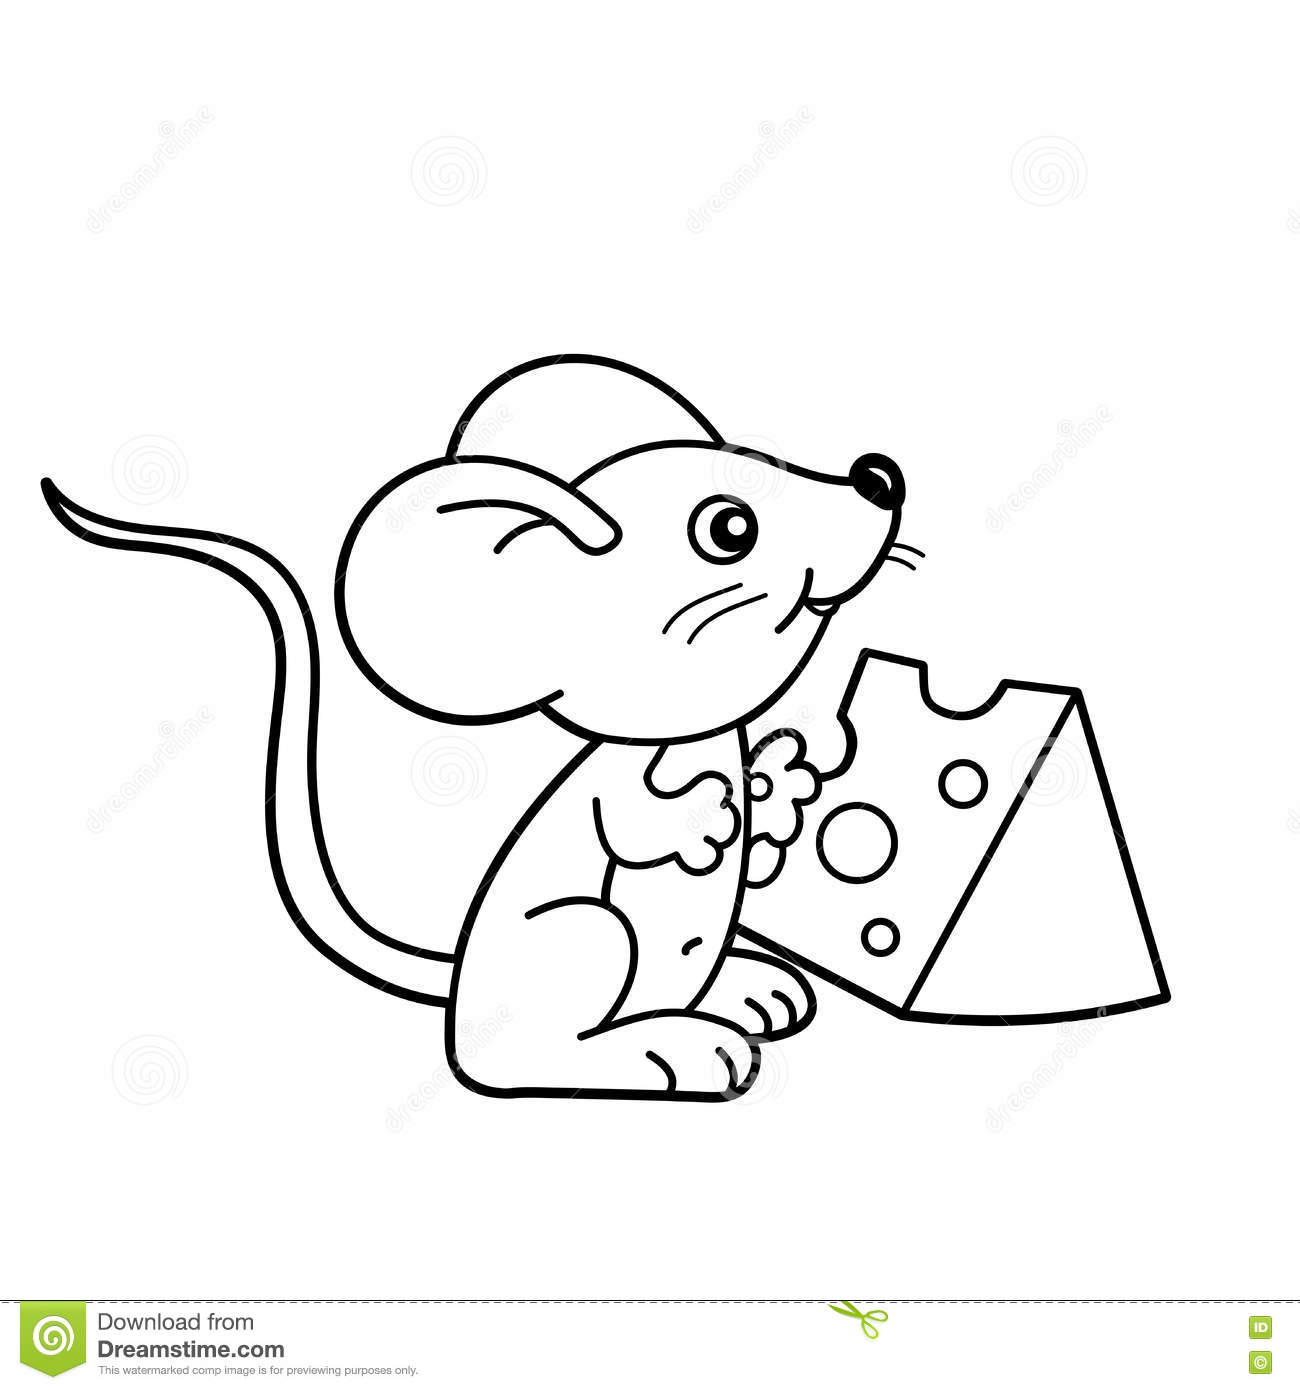 Coloring Page Outline Of Cartoon Little Mouse With Cheese